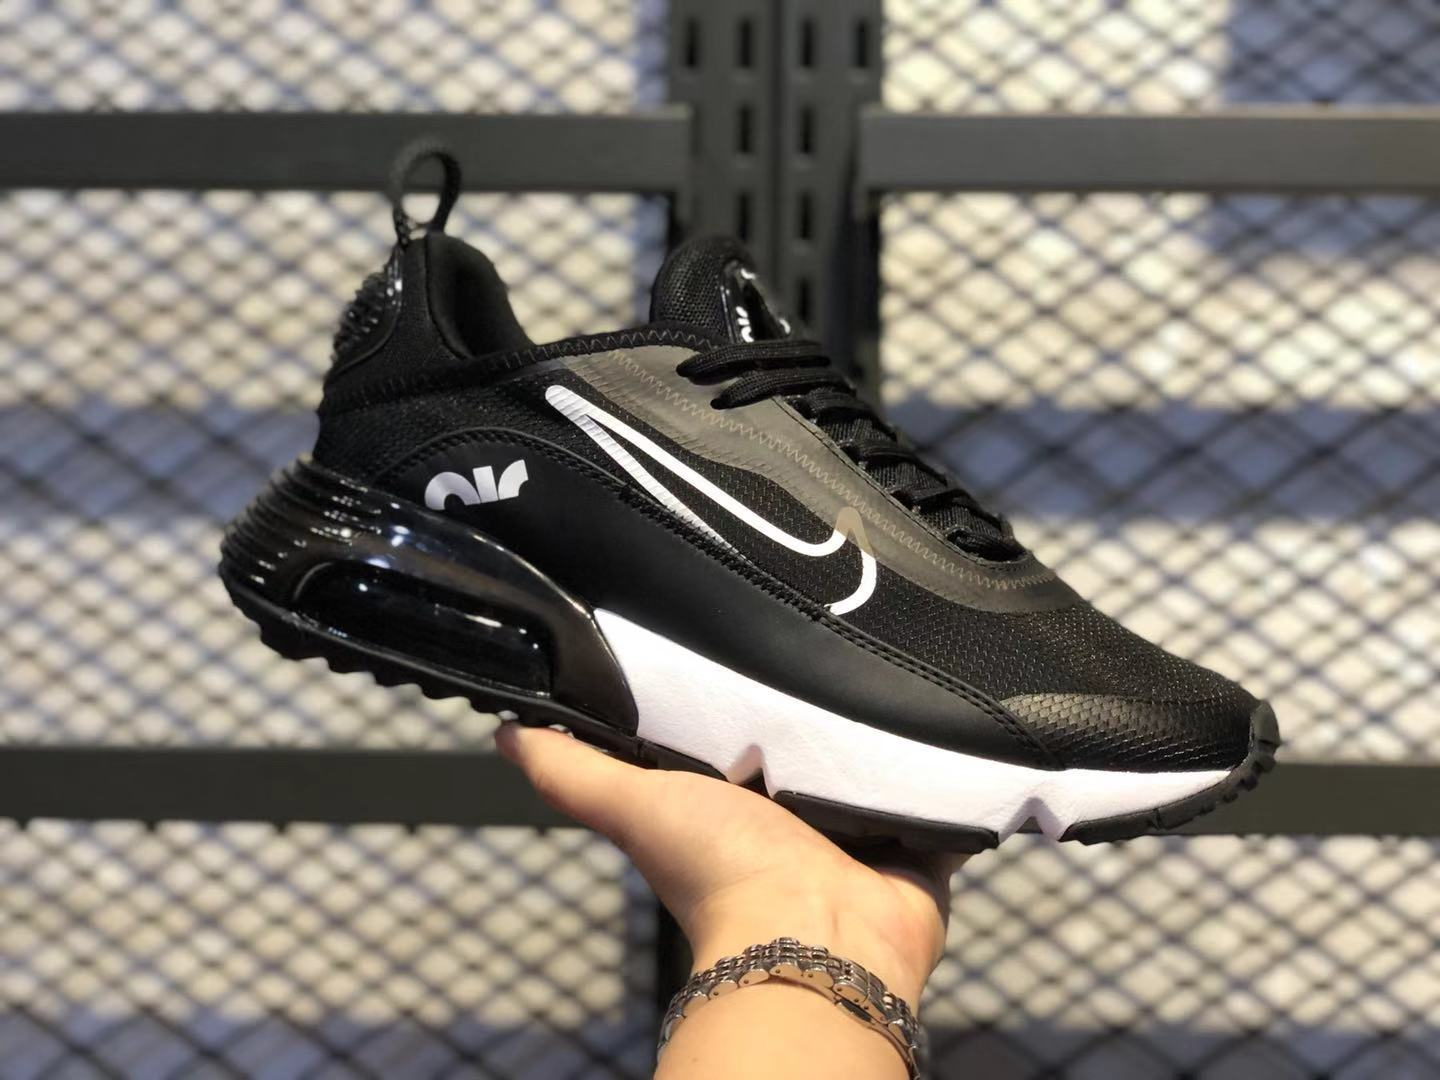 Best Sell Nike Air Max Vapormax 2090 Black/White Athletic Sneakers CQ7630-001